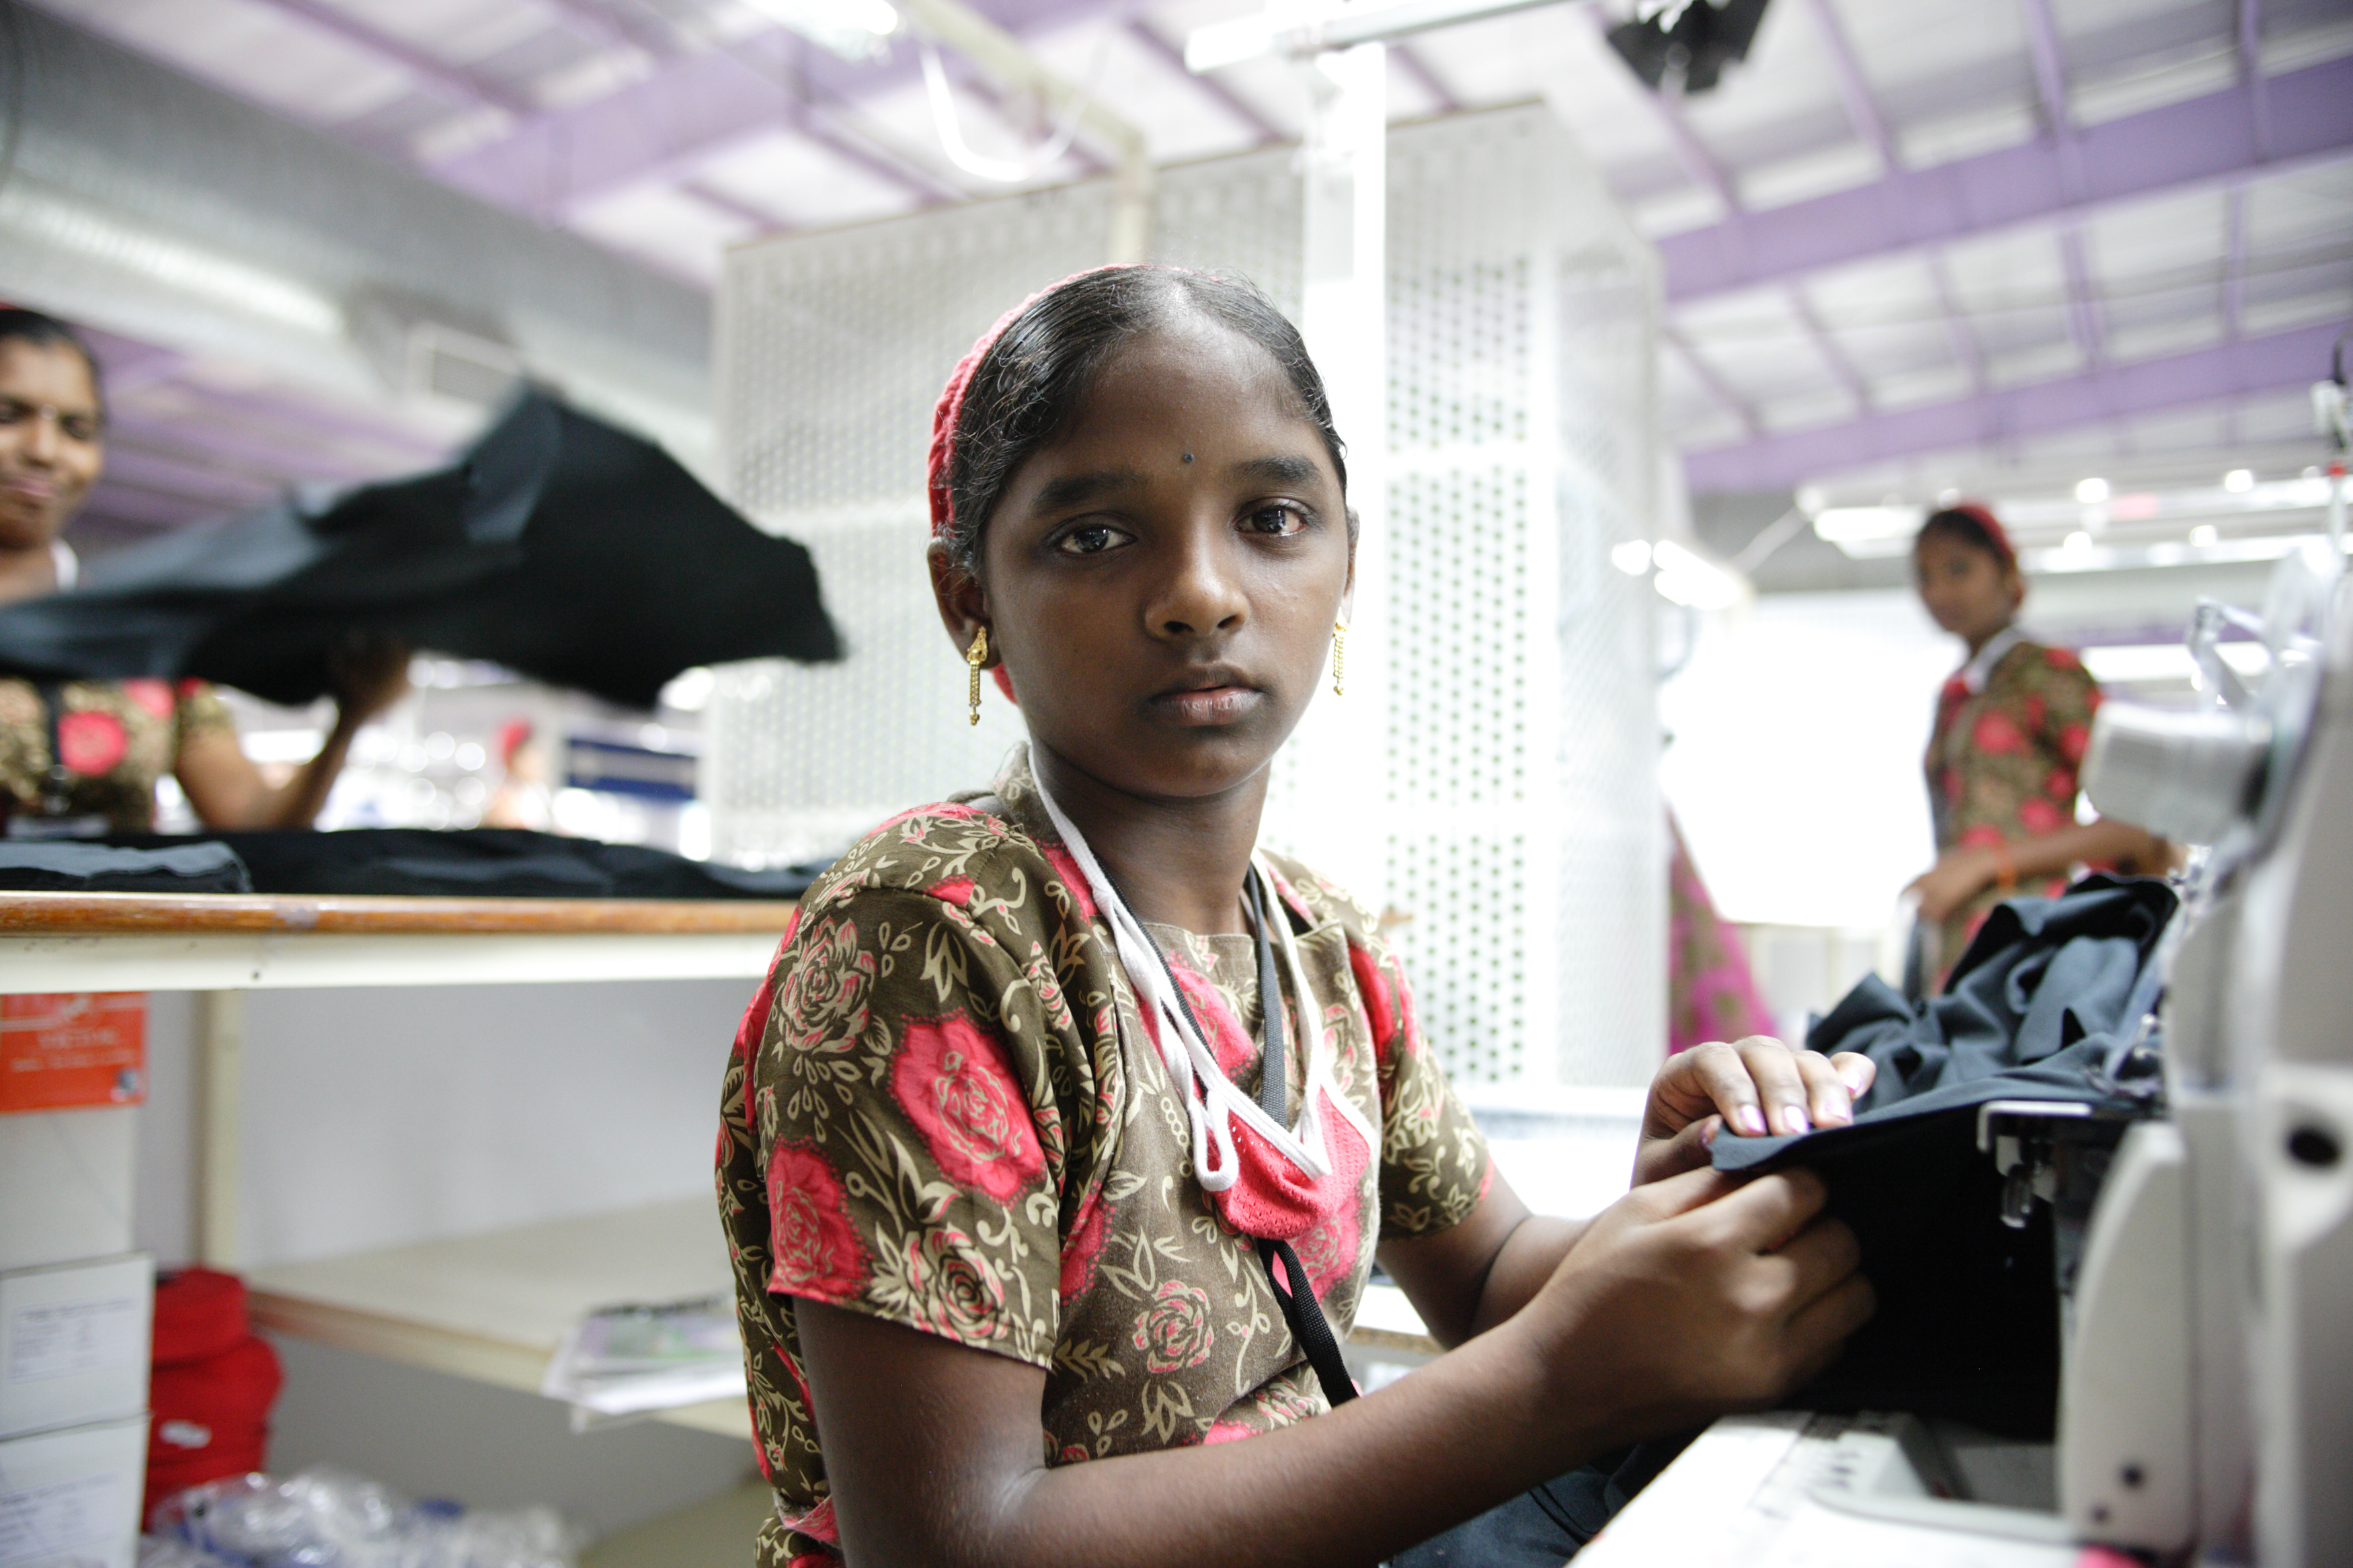 effects of child labor in asian Child labor in developing countries is not only found in sweatshops, but also in the household, in family businesses, and on the farm these forms of 'hidden' child labor have now been systematically documented by researchers in the netherlands they use data for sixteen african and asian.